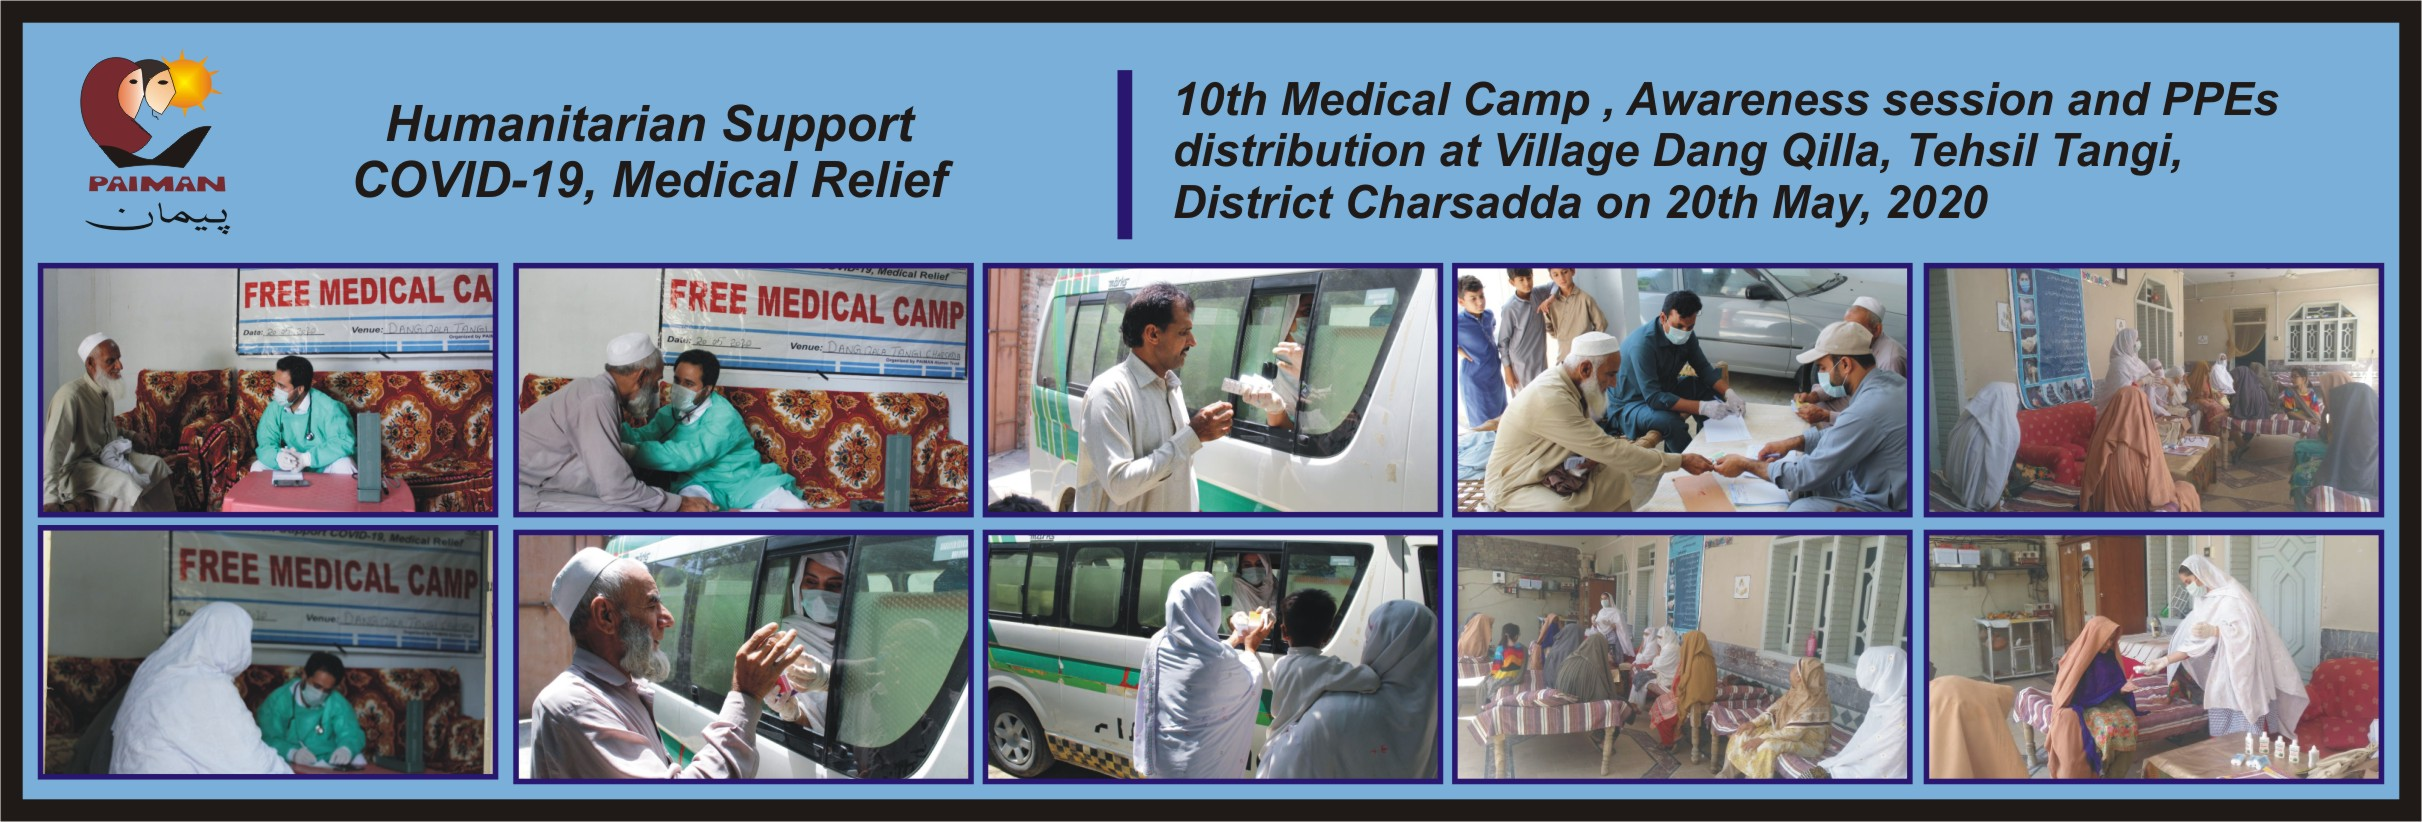 10-Medical-Camp-Charsadda.